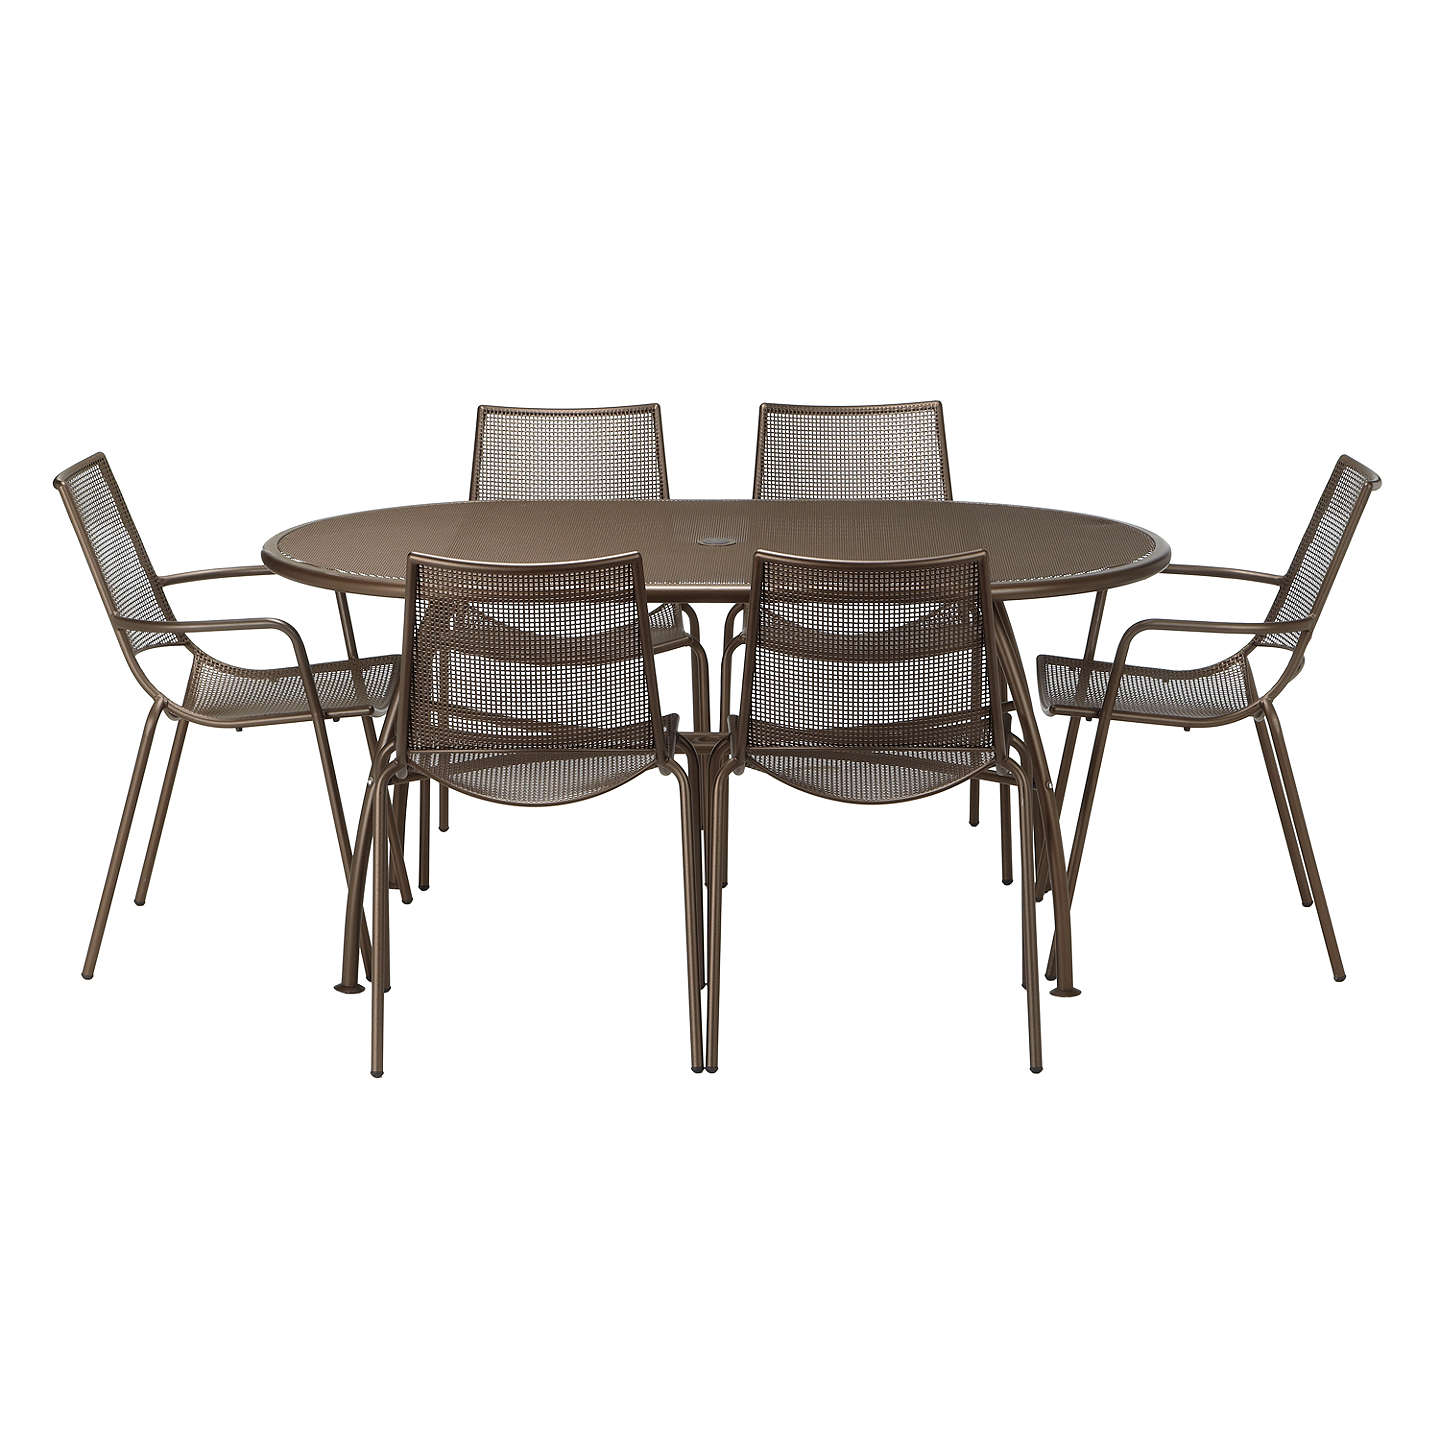 6 Seater Garden Furniture John lewis ala mesh 6 seater garden table and chairs dining set buyjohn lewis ala mesh 6 seater garden table and chairs dining set bronze online workwithnaturefo